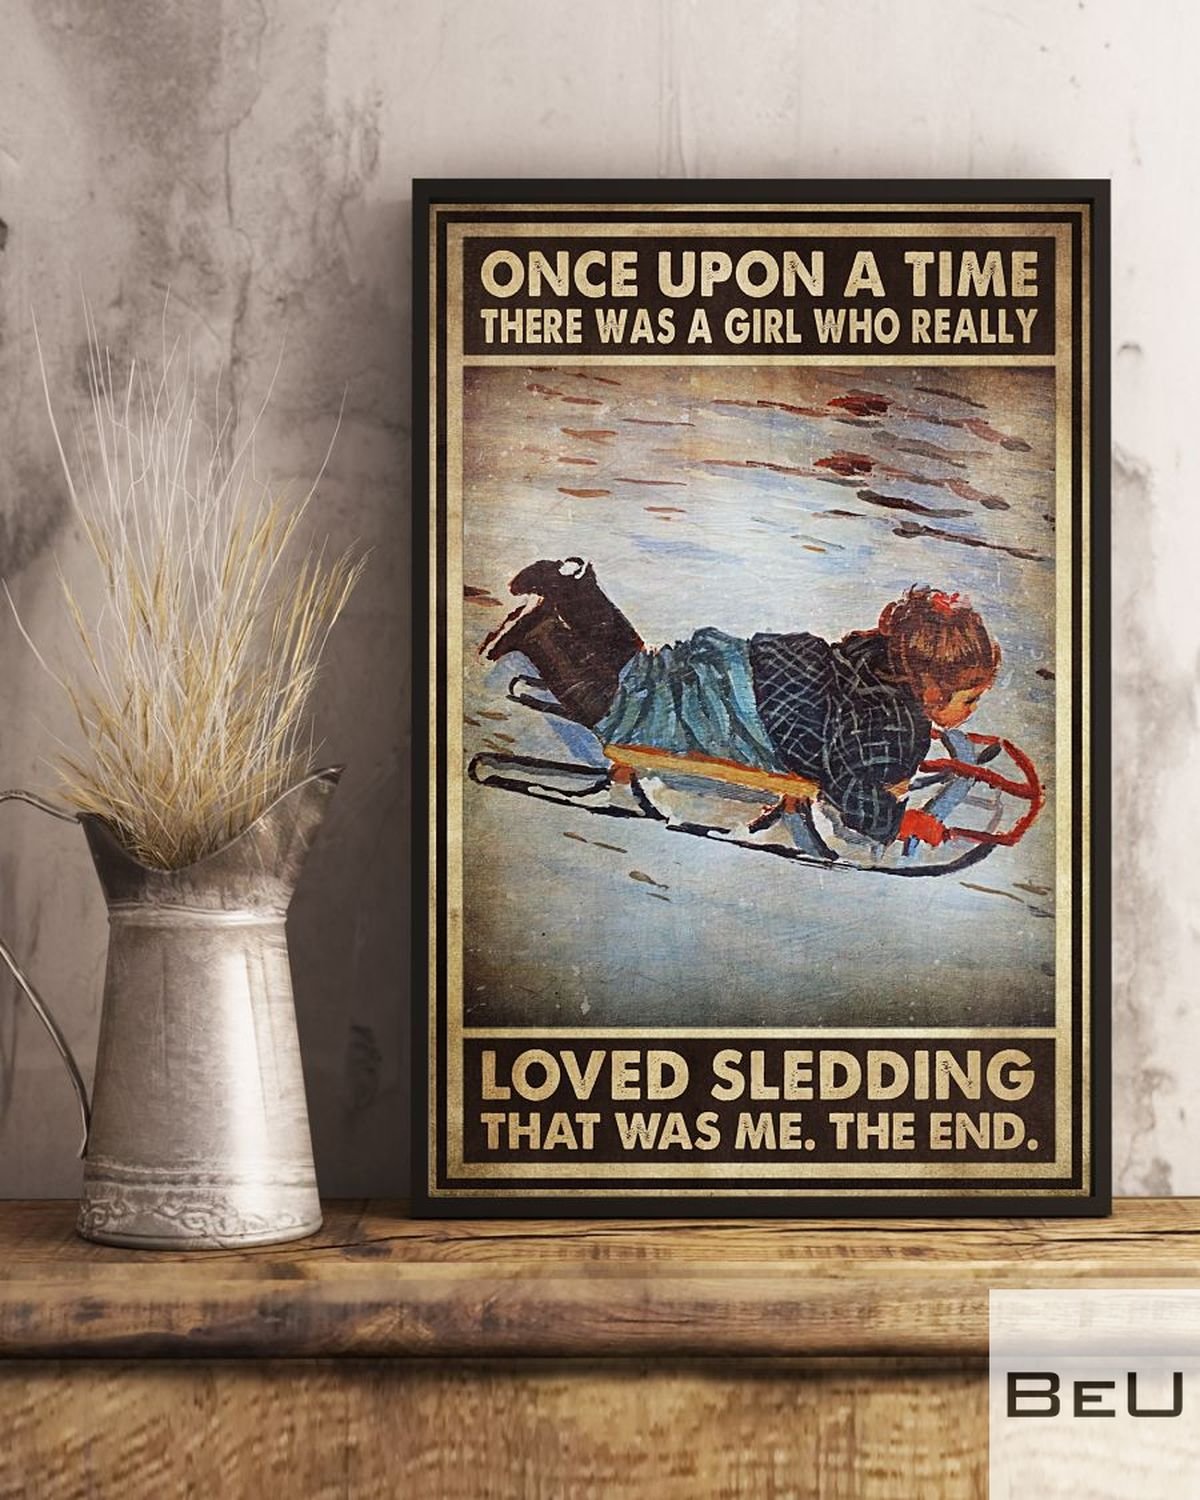 Once Upon A Time There Was A Girl Who Really Loved Sledding That Was Me Poster x